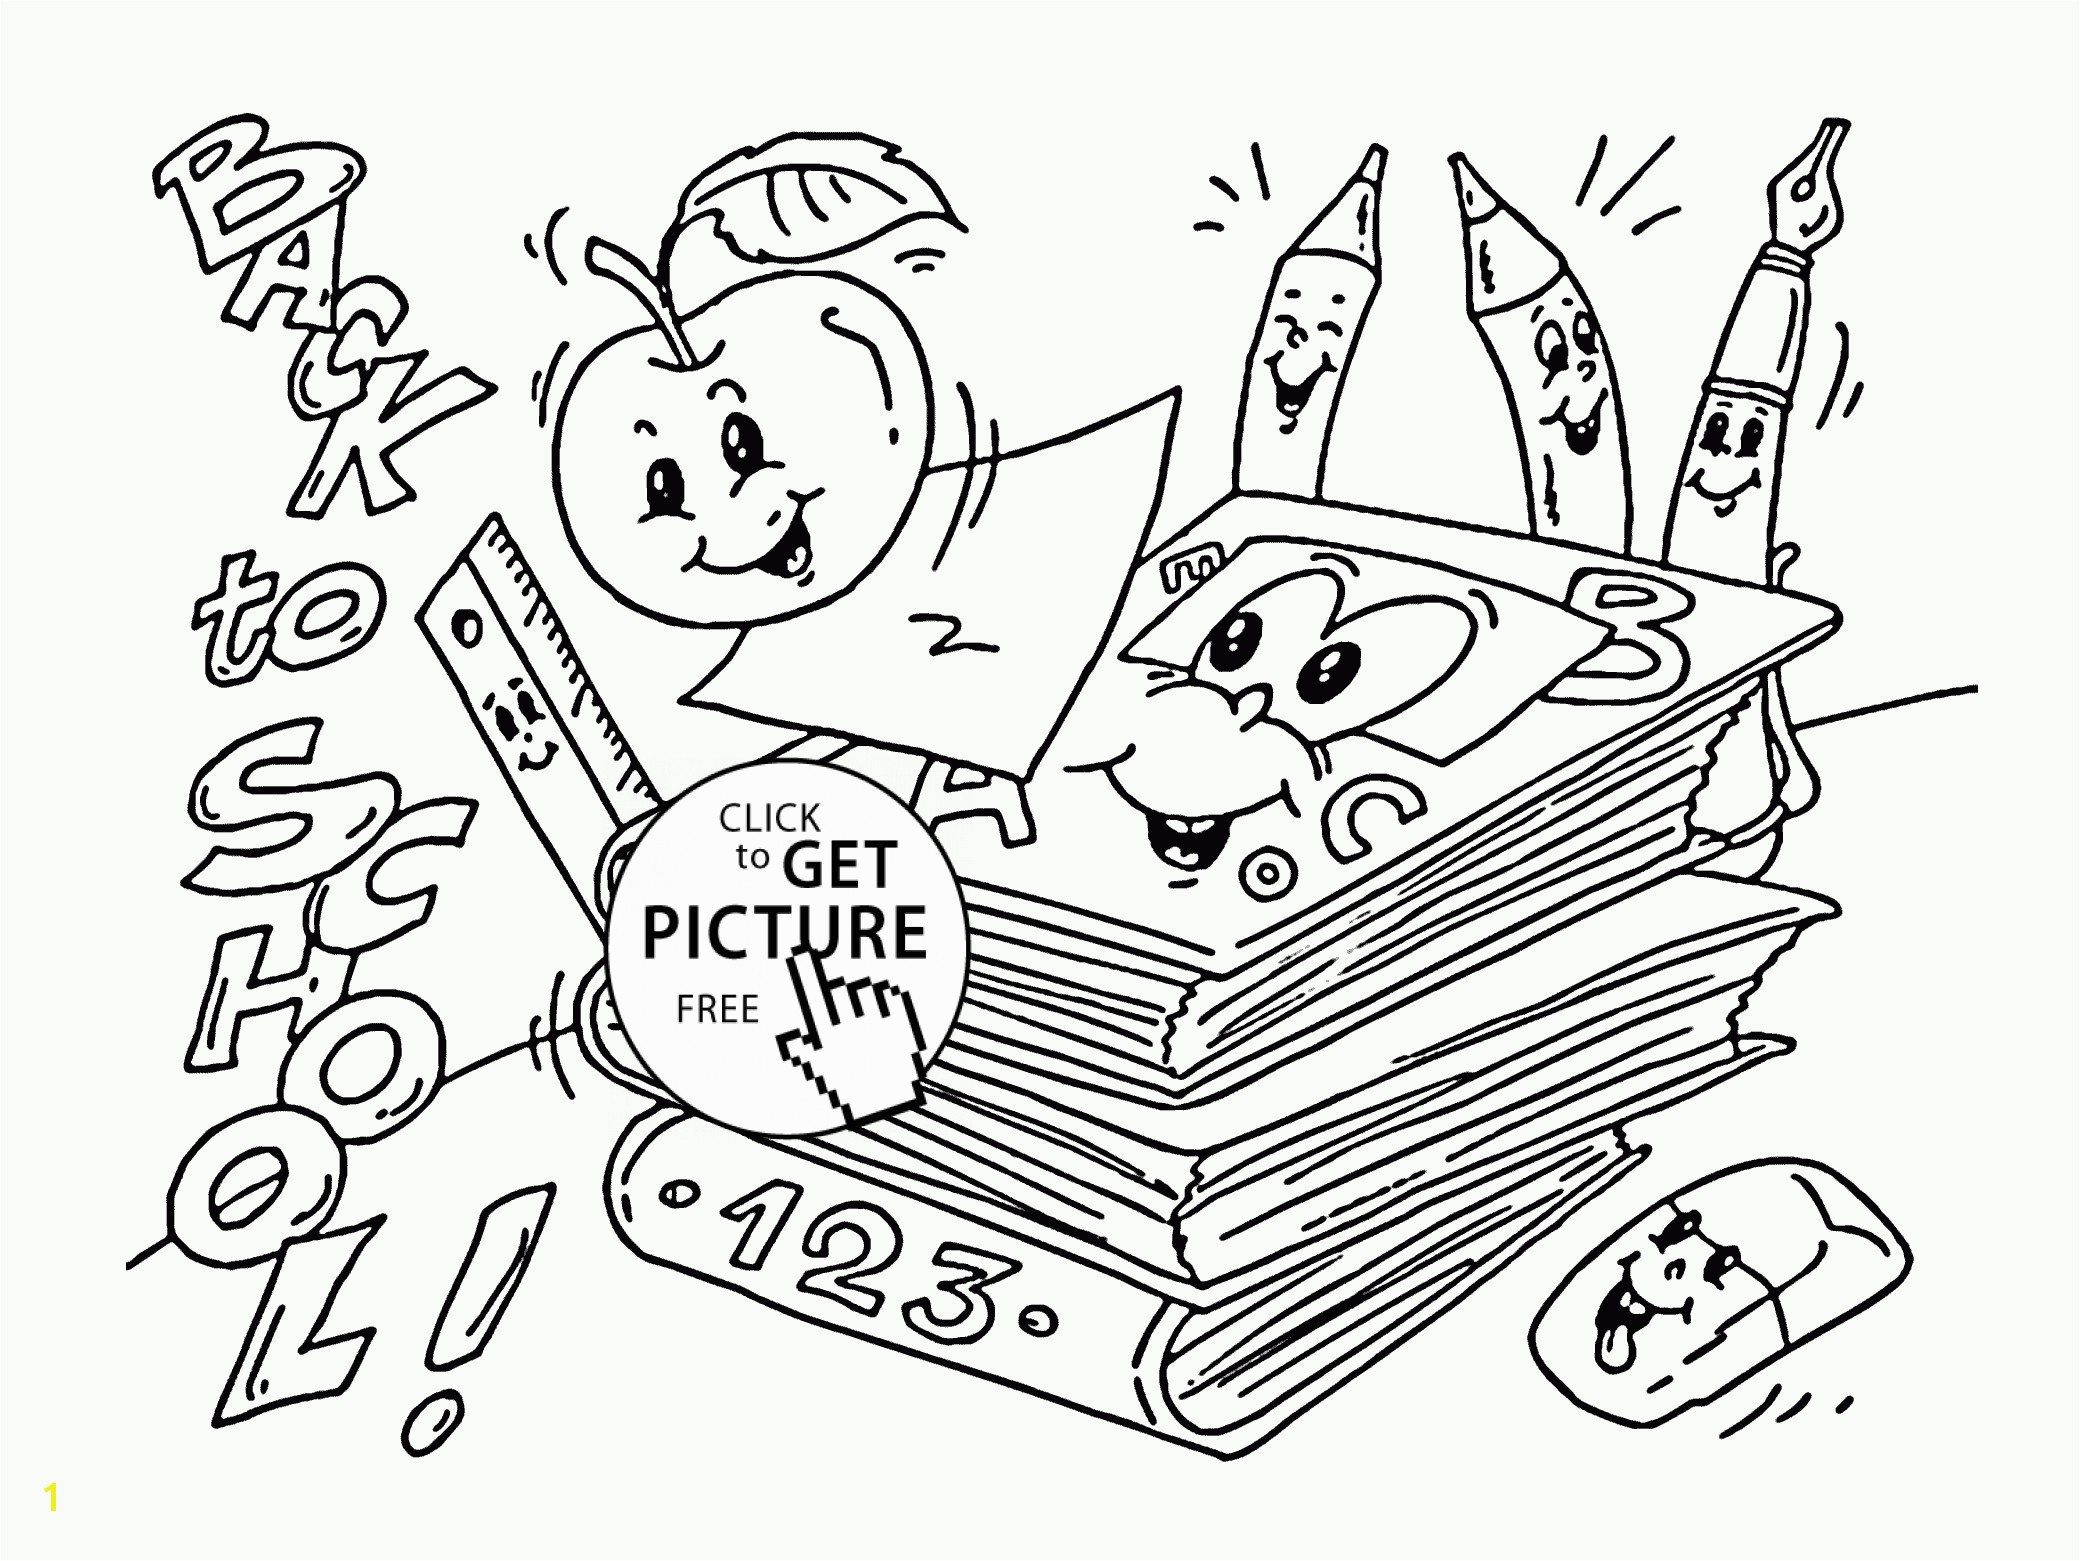 New school supplies coloring sheet Free 3j Full Size of Coloring Book And Pages Free